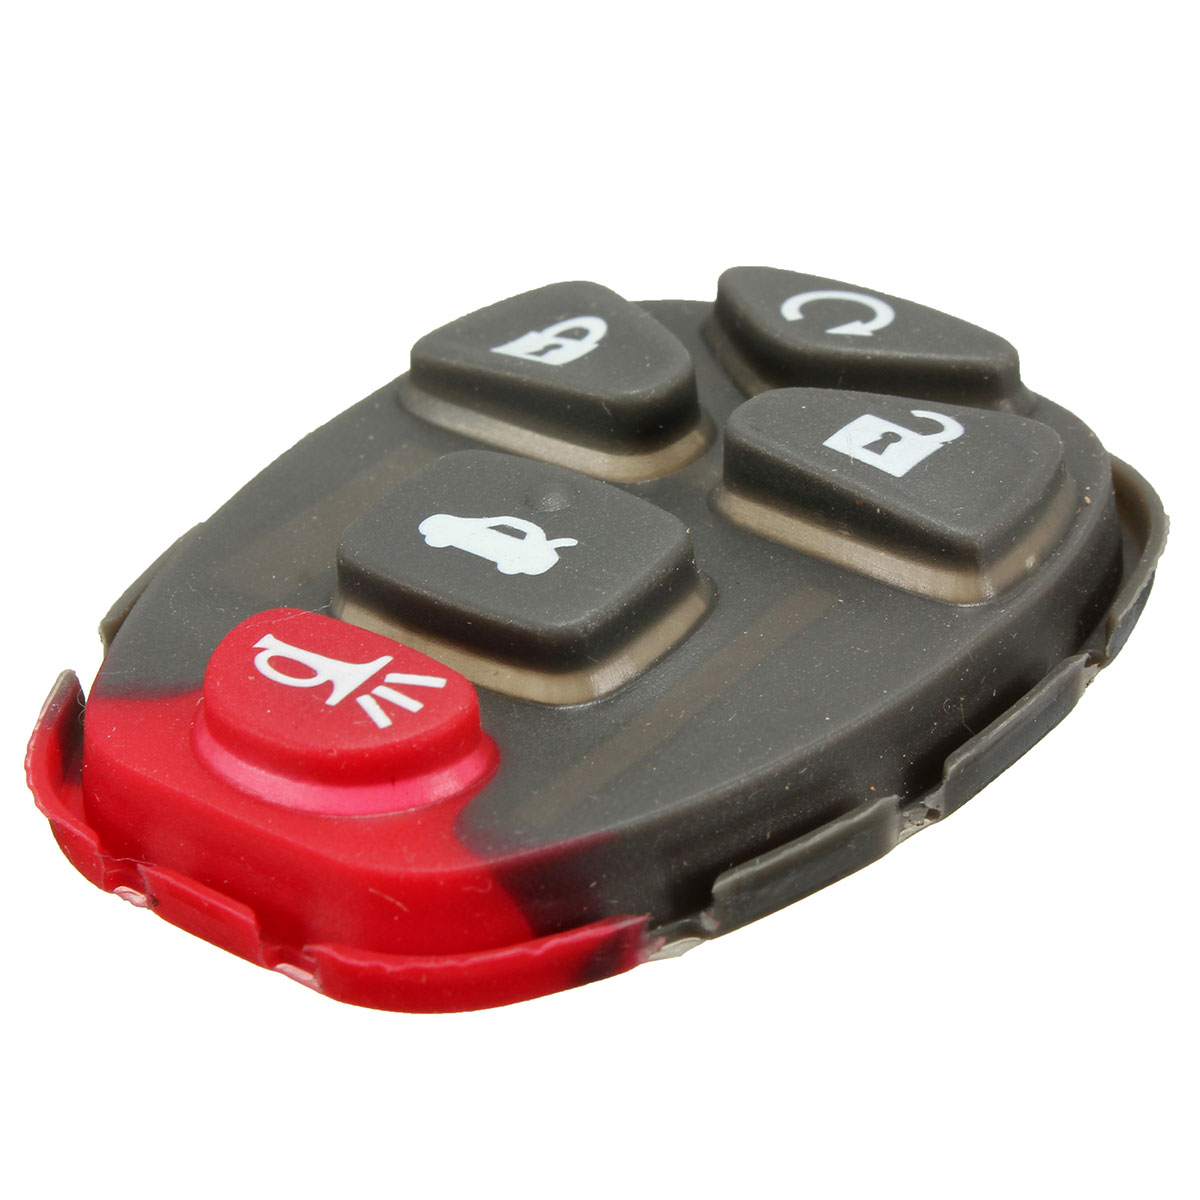 Remote Key 5 Buttons Rubber Pad For Chevrolet Gm Buick Fob